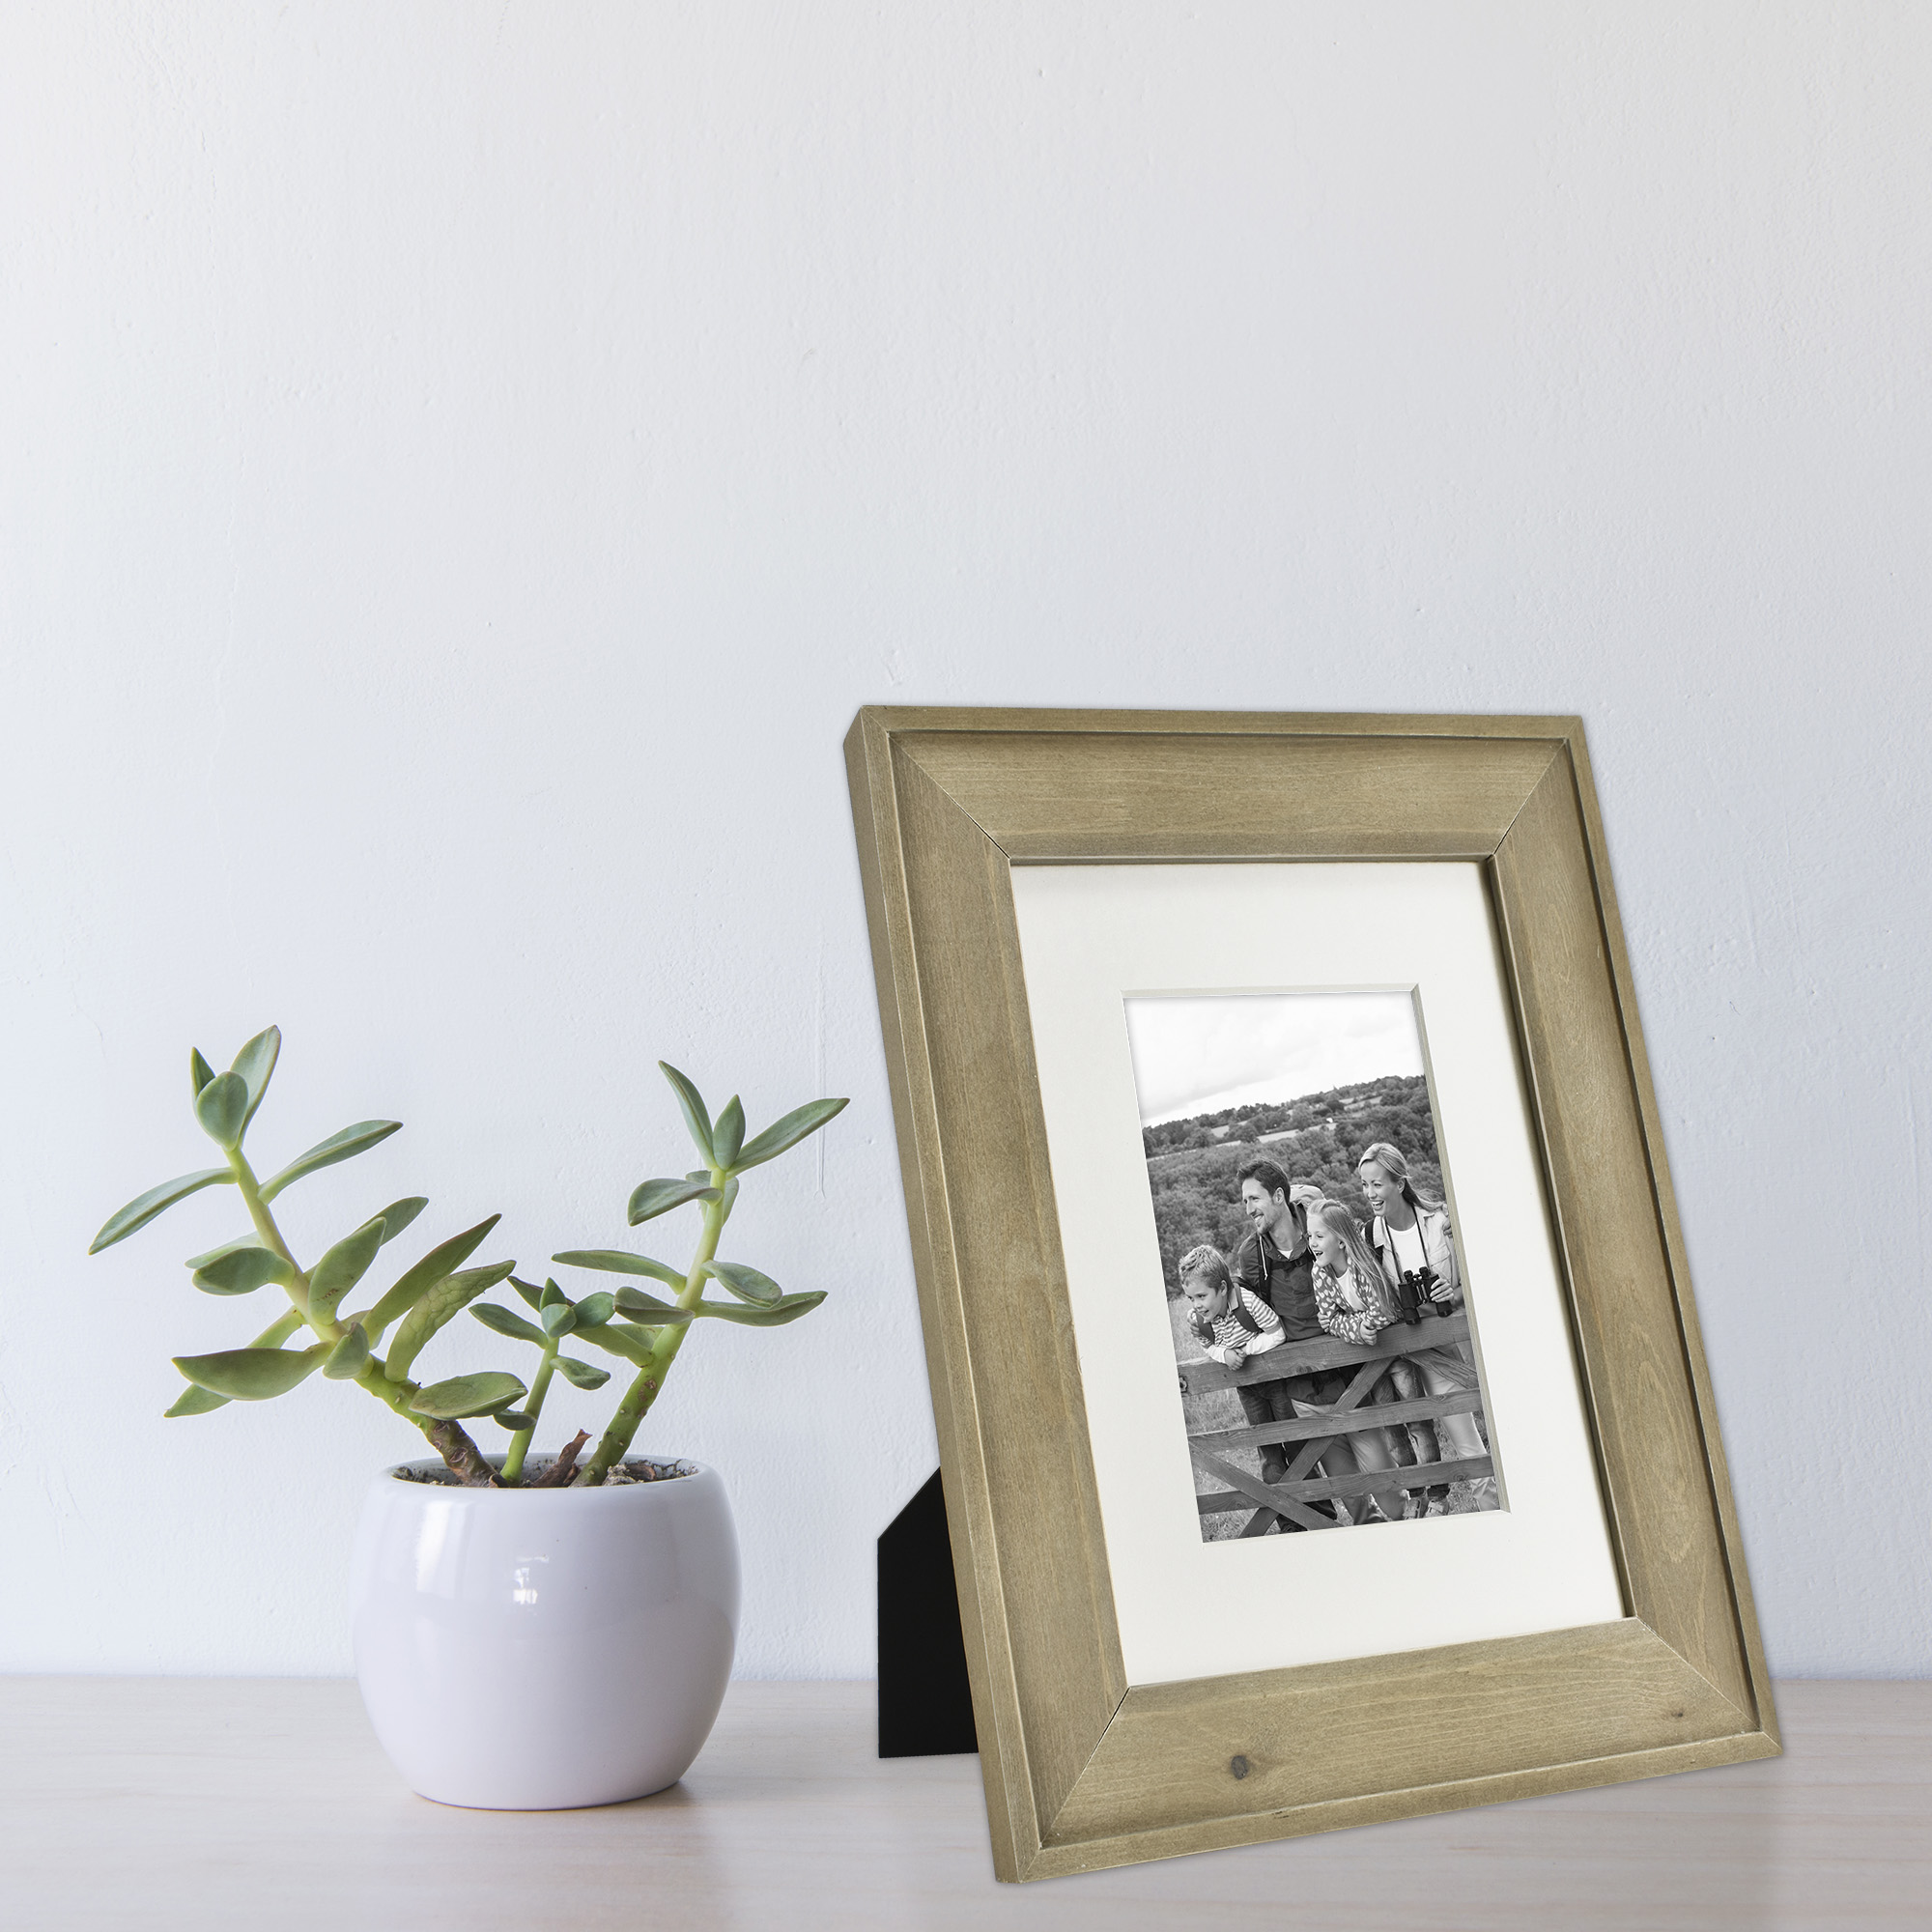 Better homes gardens 8x105x7 rustic wood picture frame 2pk better homes gardens 8x105x7 rustic wood picture frame 2pk walmart jeuxipadfo Choice Image